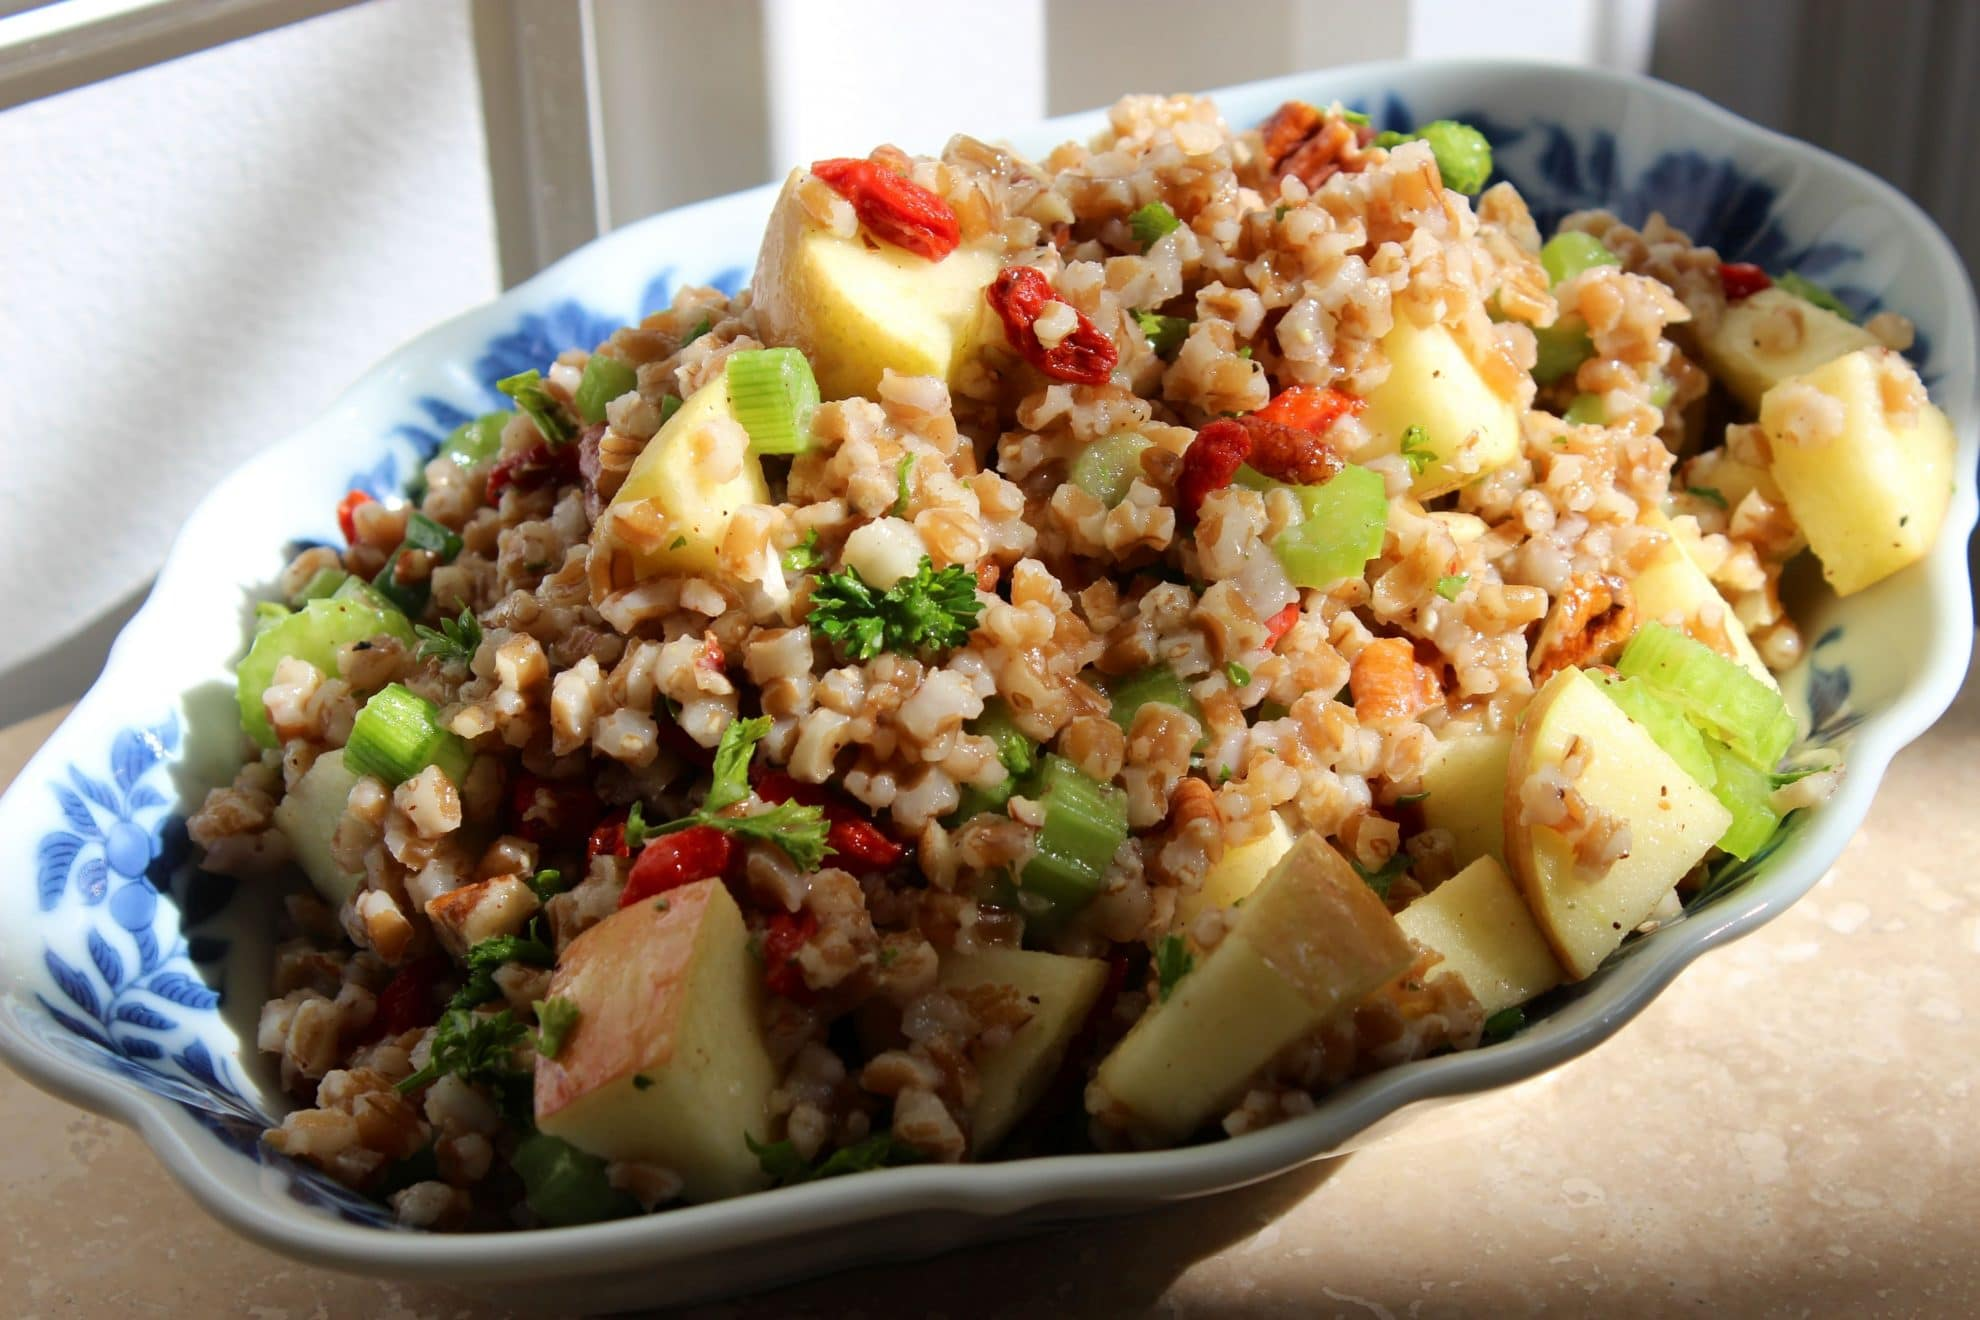 Wheat Berry Waldorf Salad with Citrus Vinaigrette